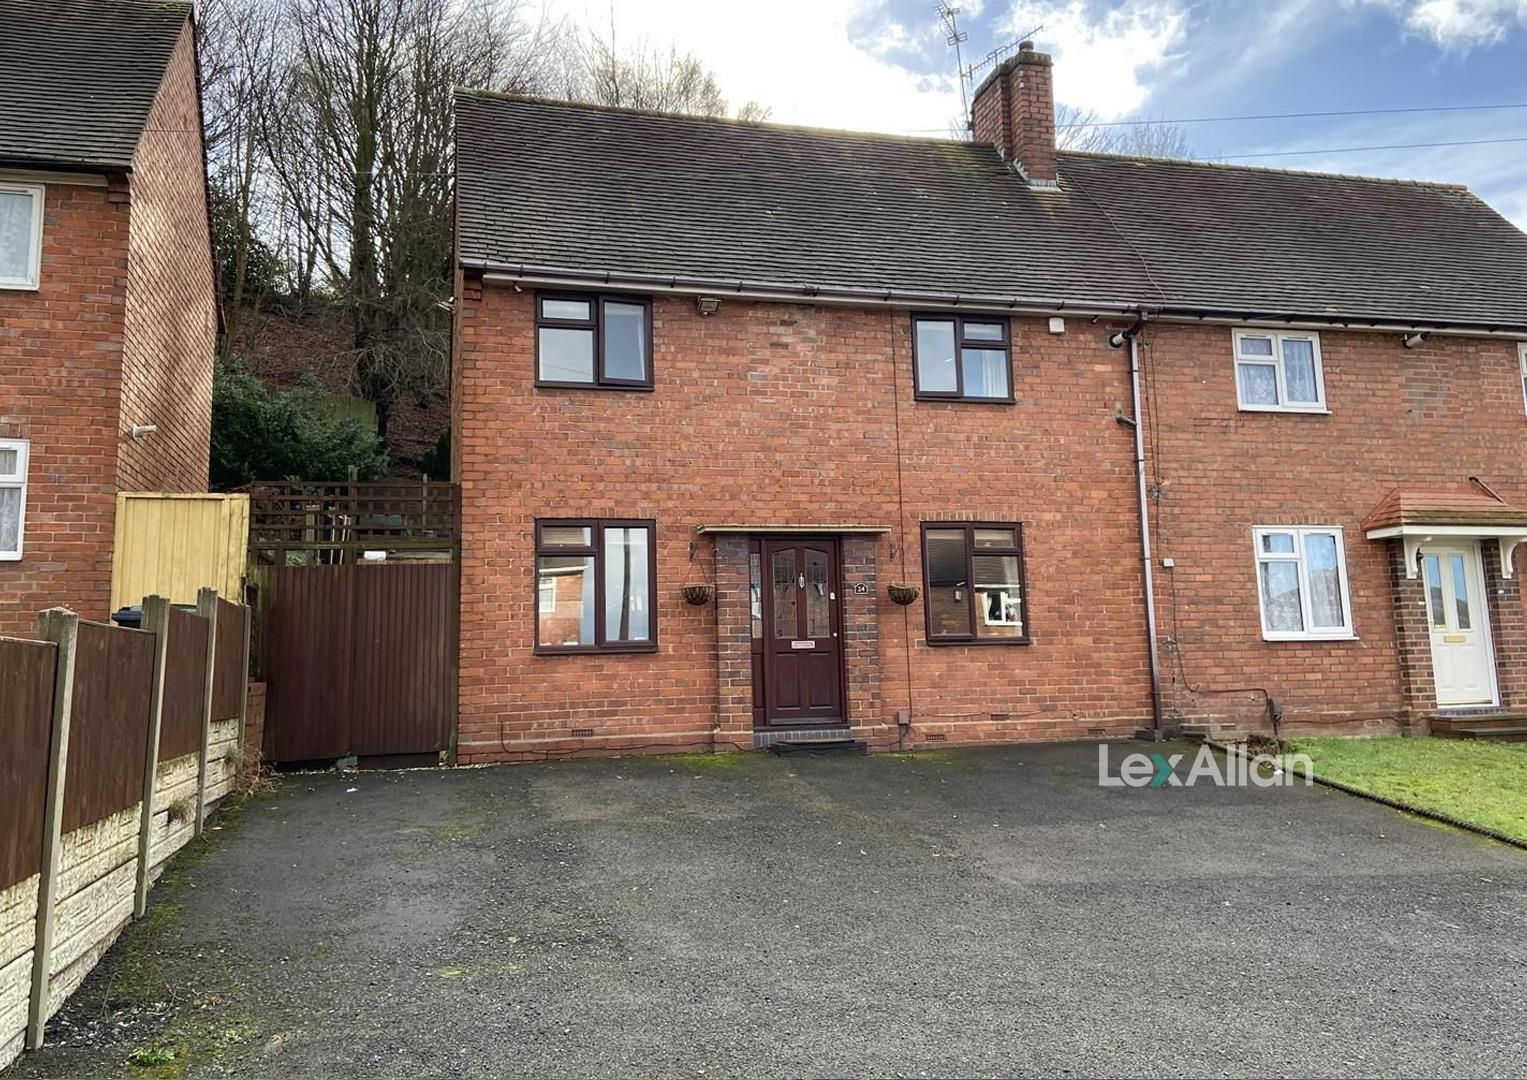 2 bed semi-detached for sale, DY9